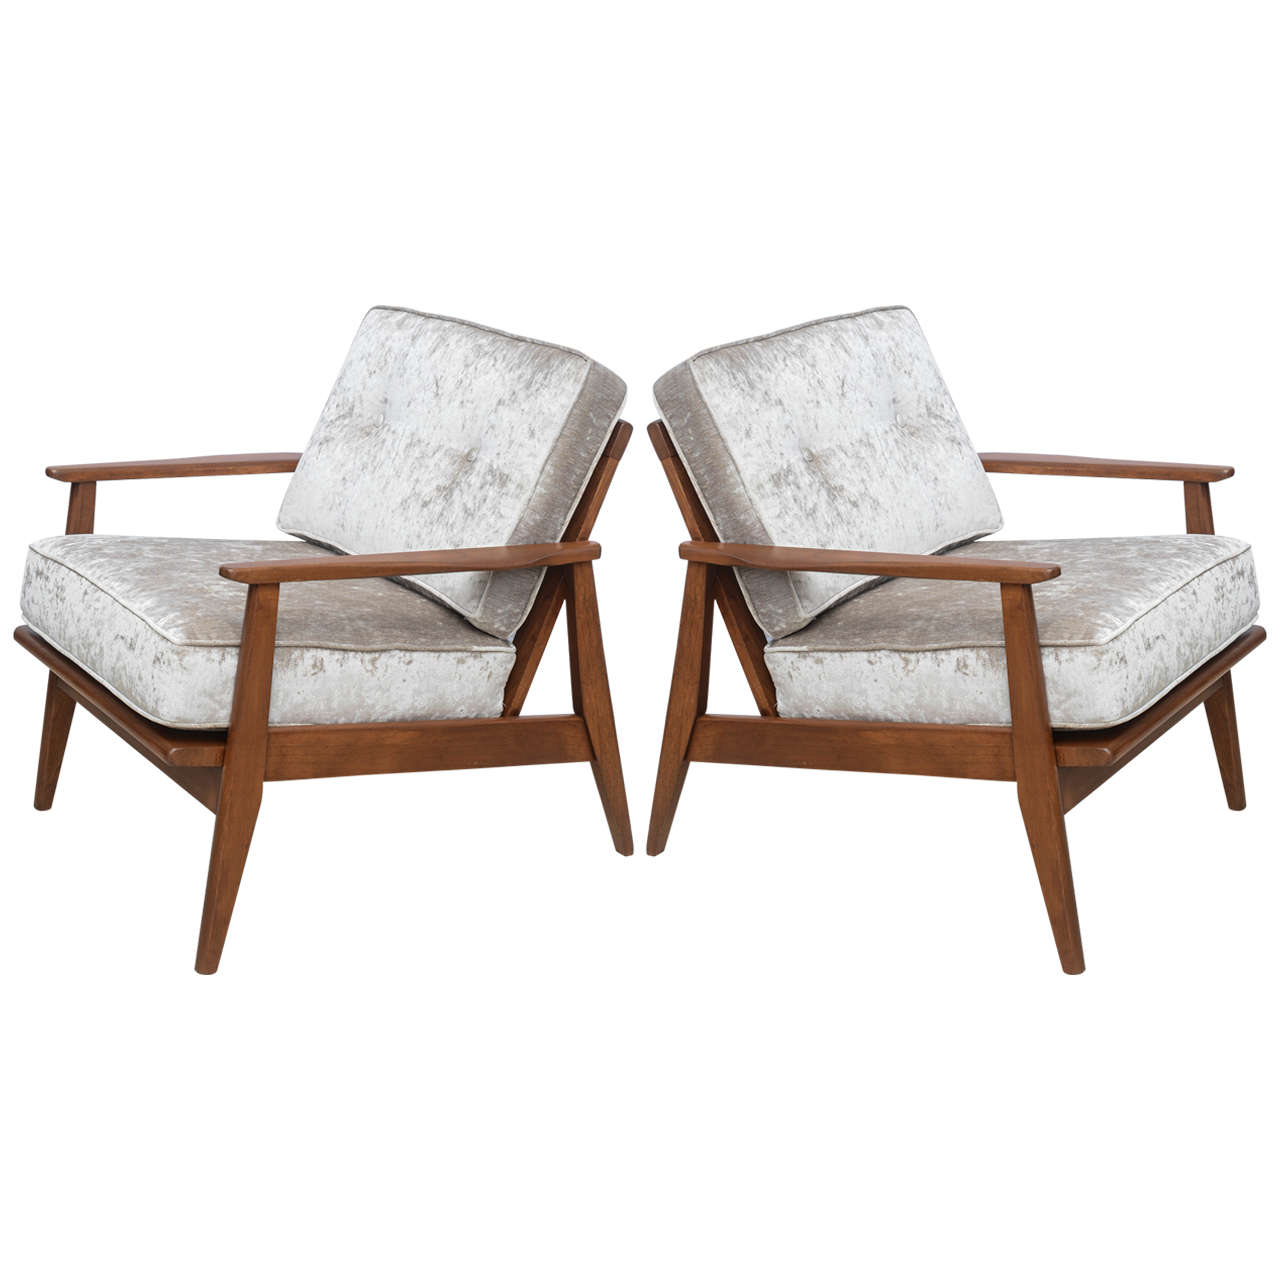 Newly Refurbished Pair Of MCM Arm Chairs, 1960 America At